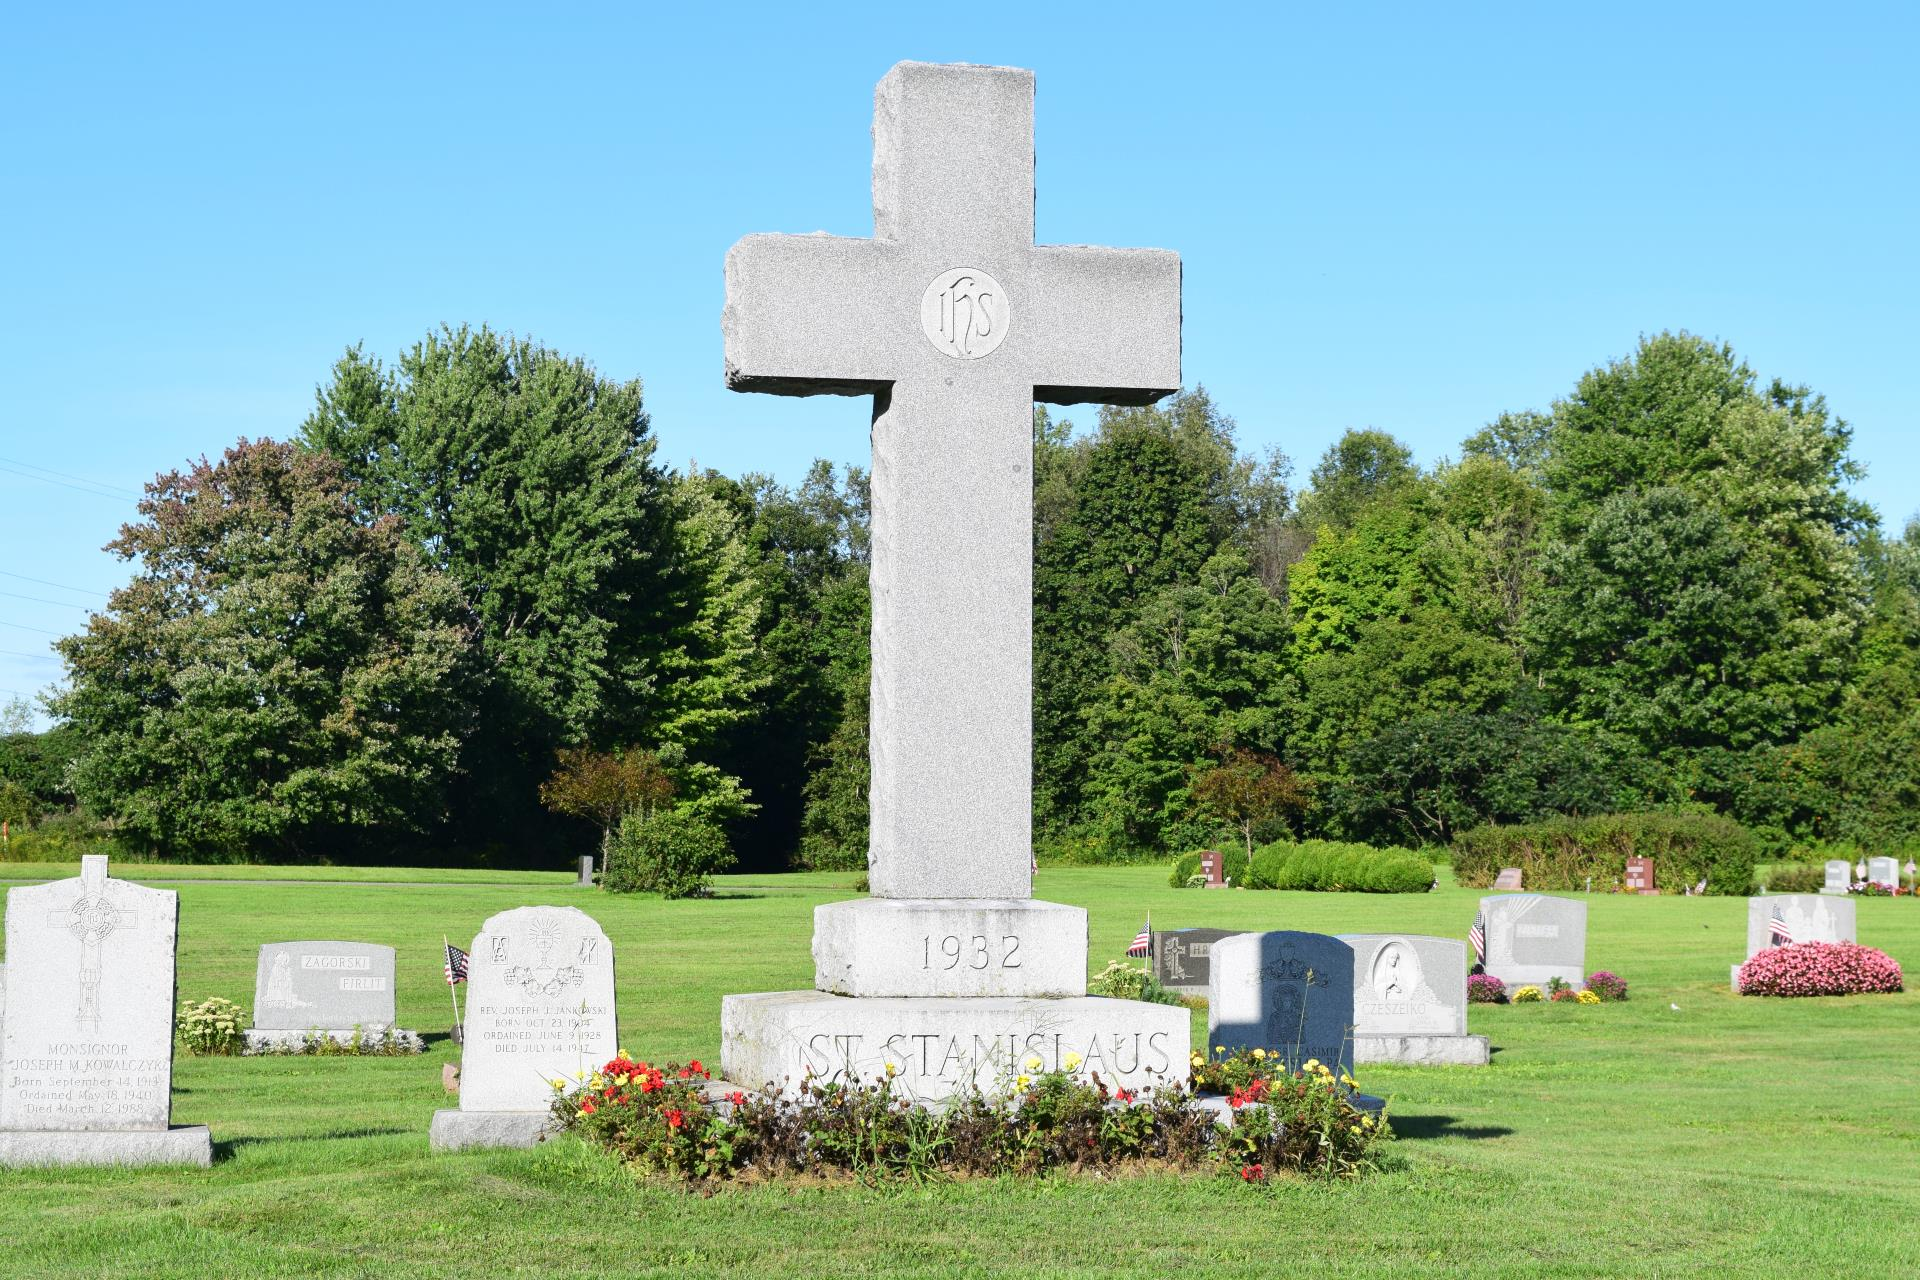 Burial area depicting a large cross monument and other small headstones